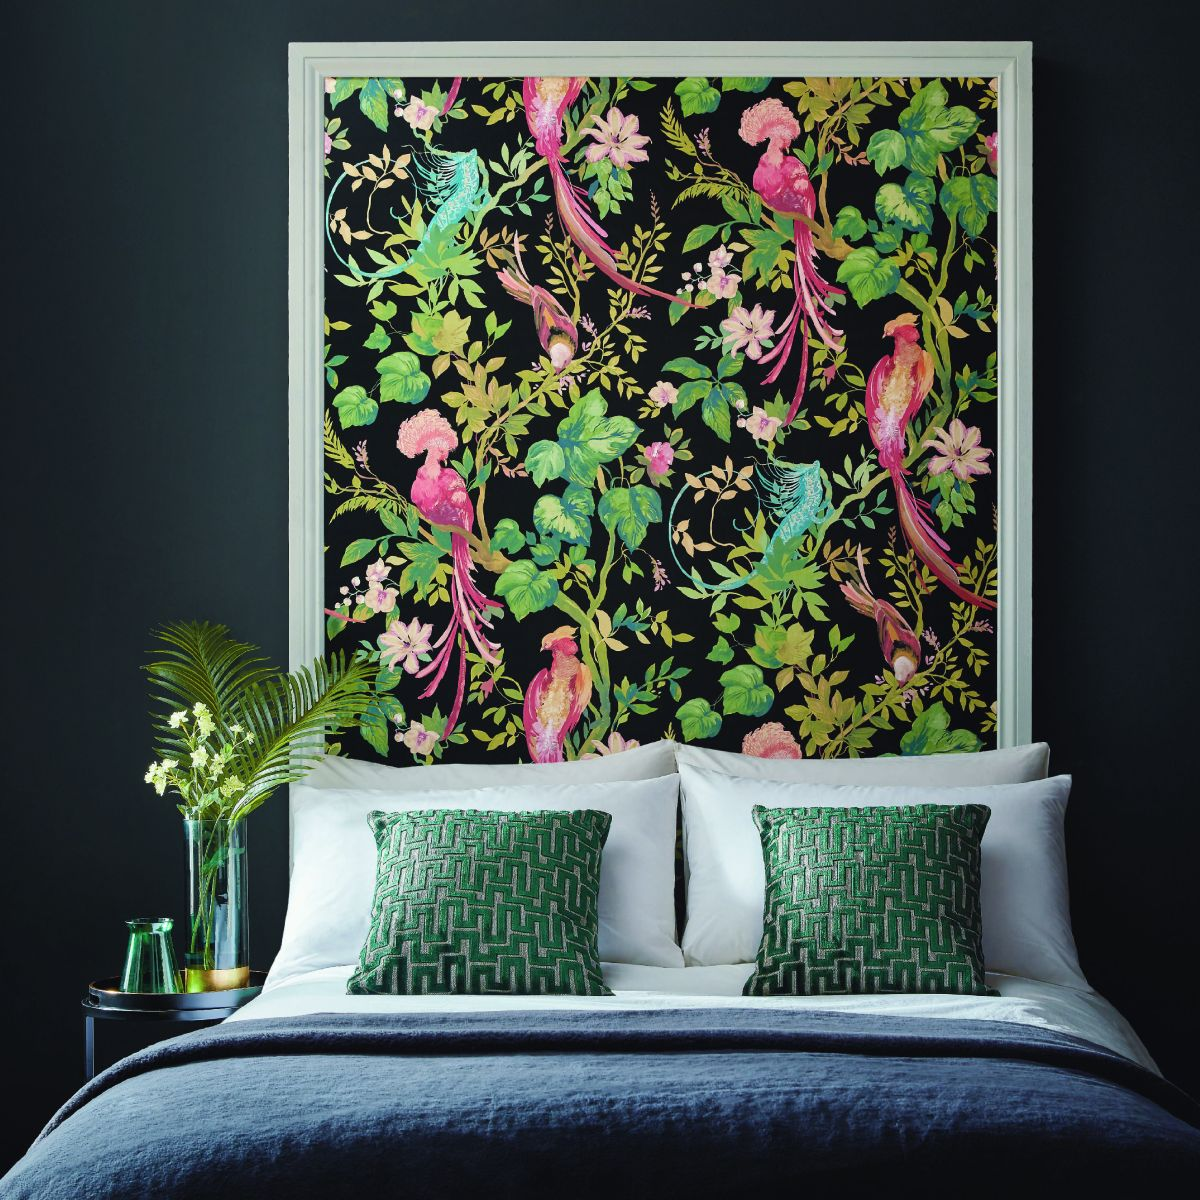 15 bedroom wall decor ideas – dreamy ways to decorate blank space